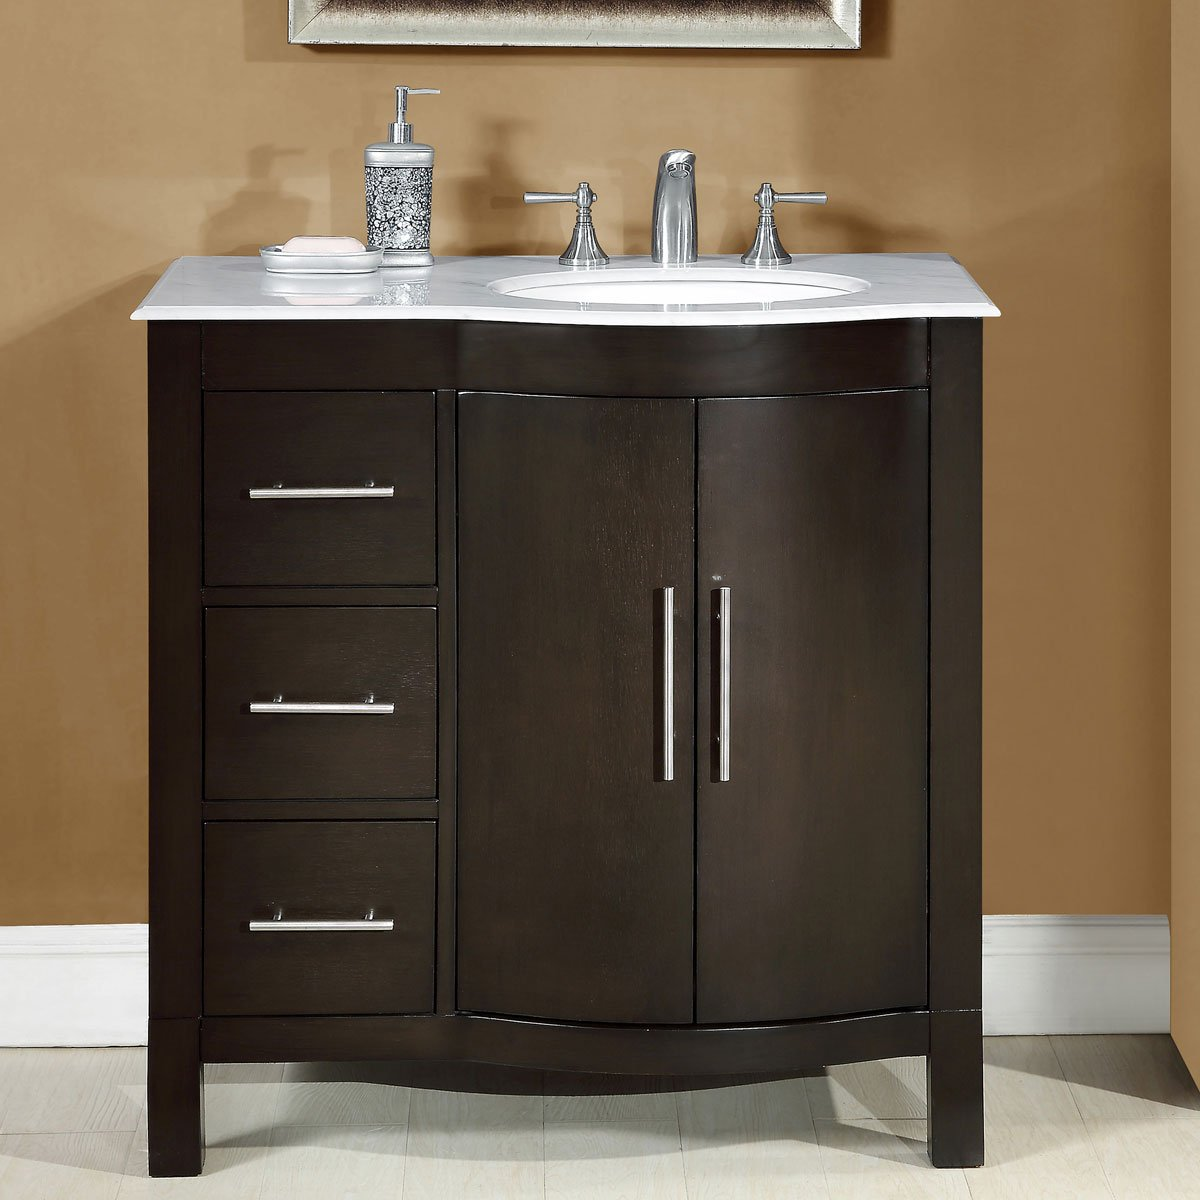 Silkroad Exclusive Carrara White Marble Top Off Center Single Sink Bathroom Vanity with Cabinet, 36 , Brown